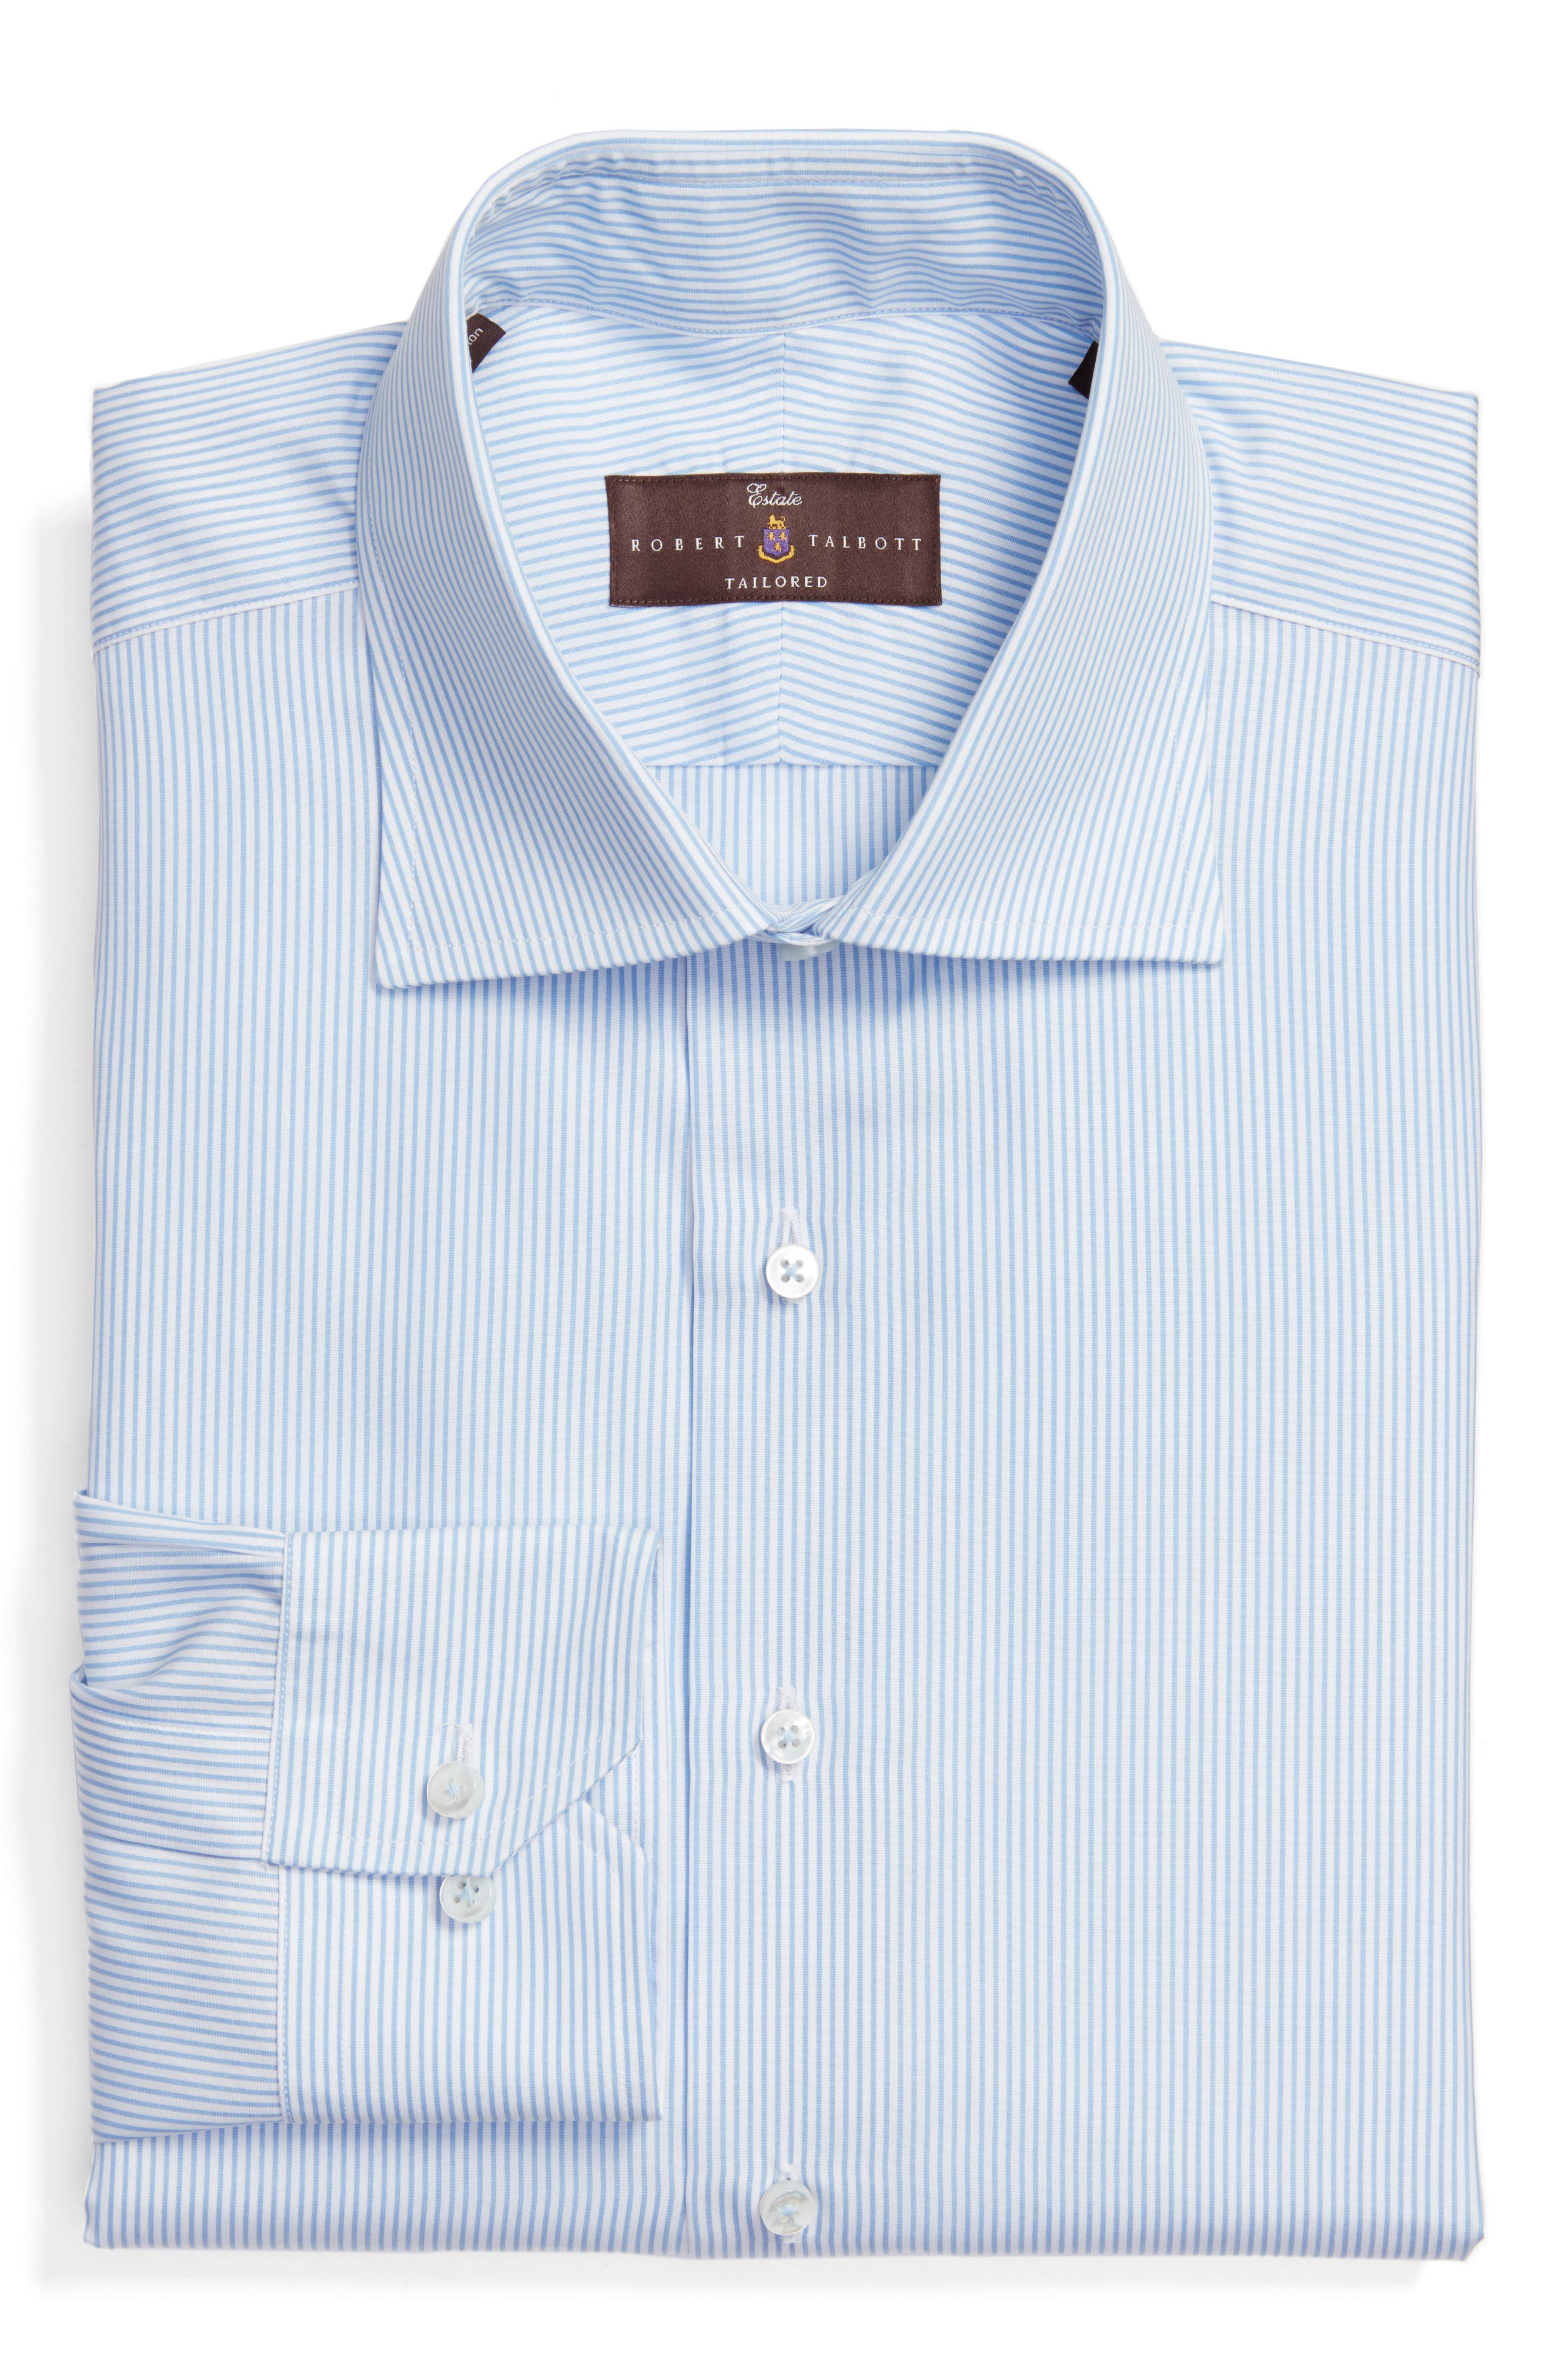 Tailored Fit Stripe Dress Shirt,                             Main thumbnail 1, color,                             SKY